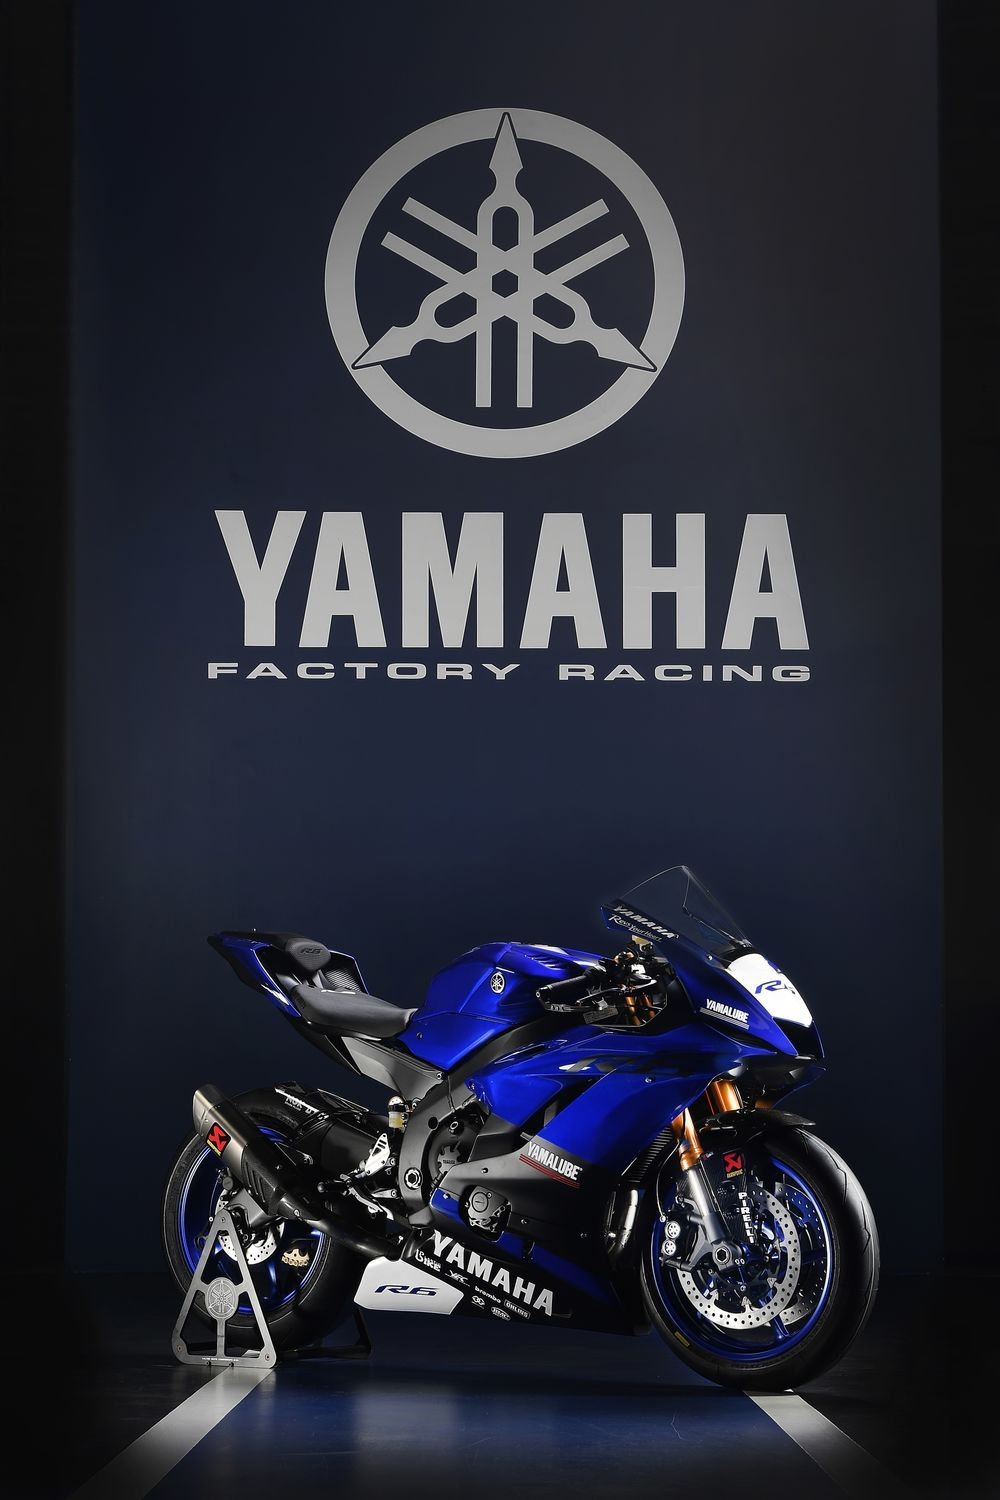 2012 yamaha yzf r6 reviews prices and specs review ebooks - 2017 Yamaha Yzf R6